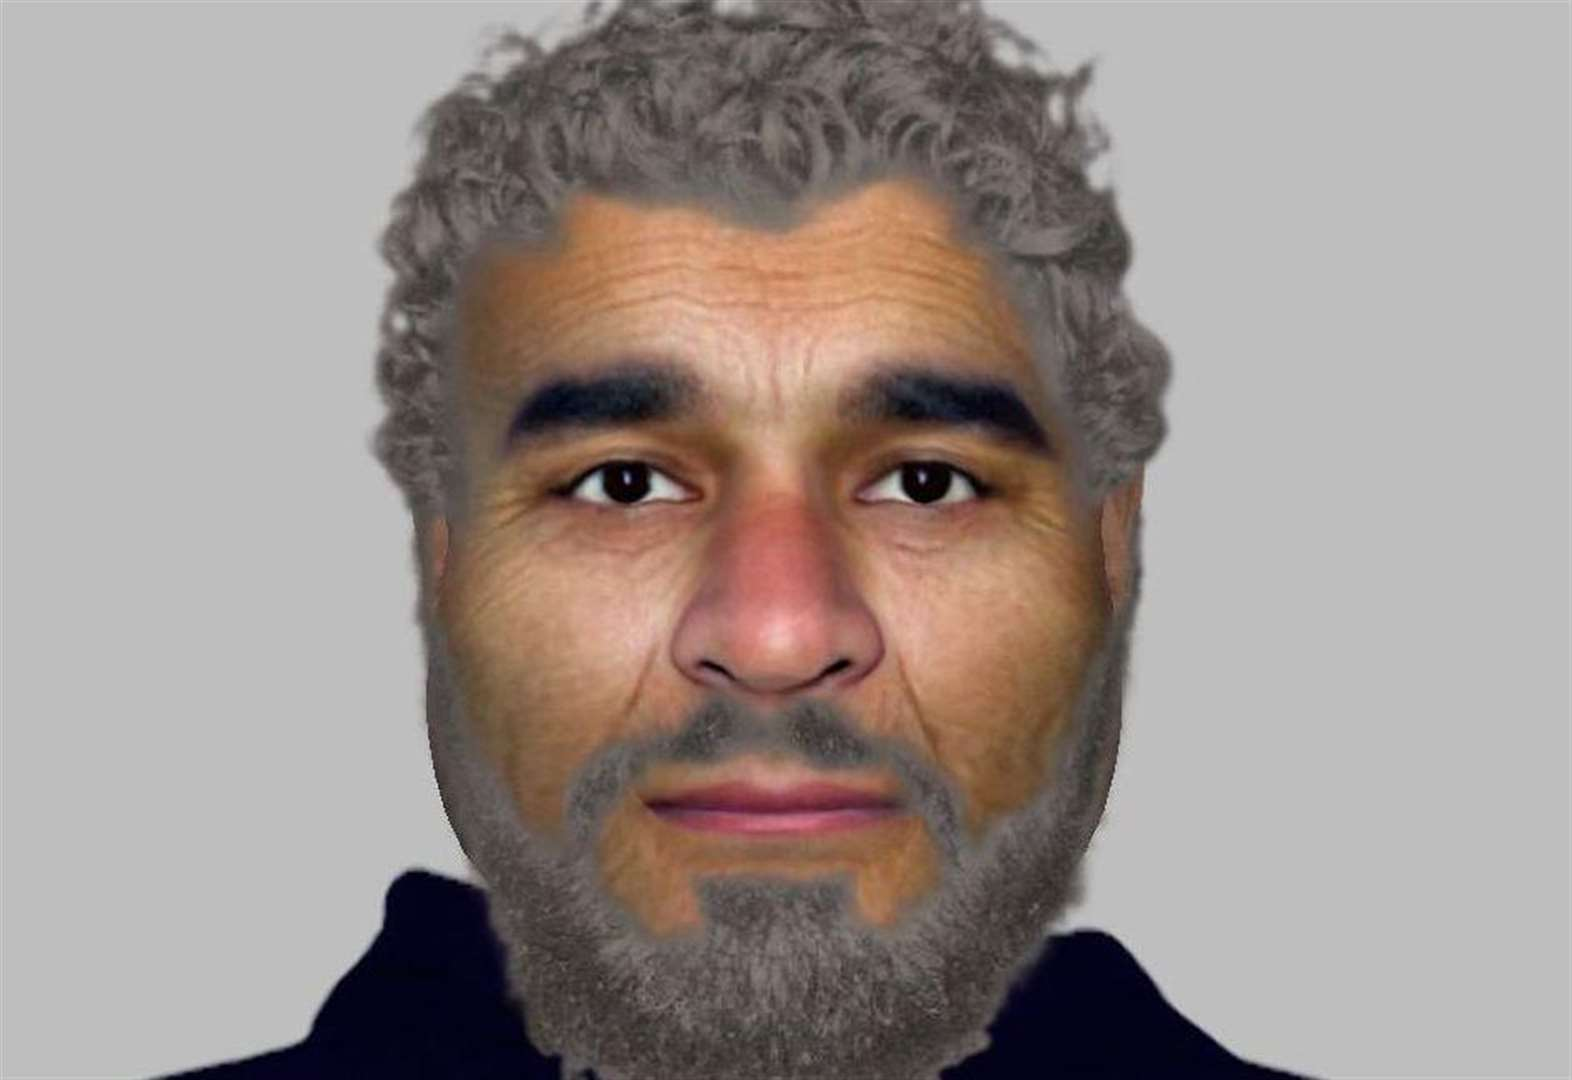 E-fit released after woman 'grabbed' by man in white van